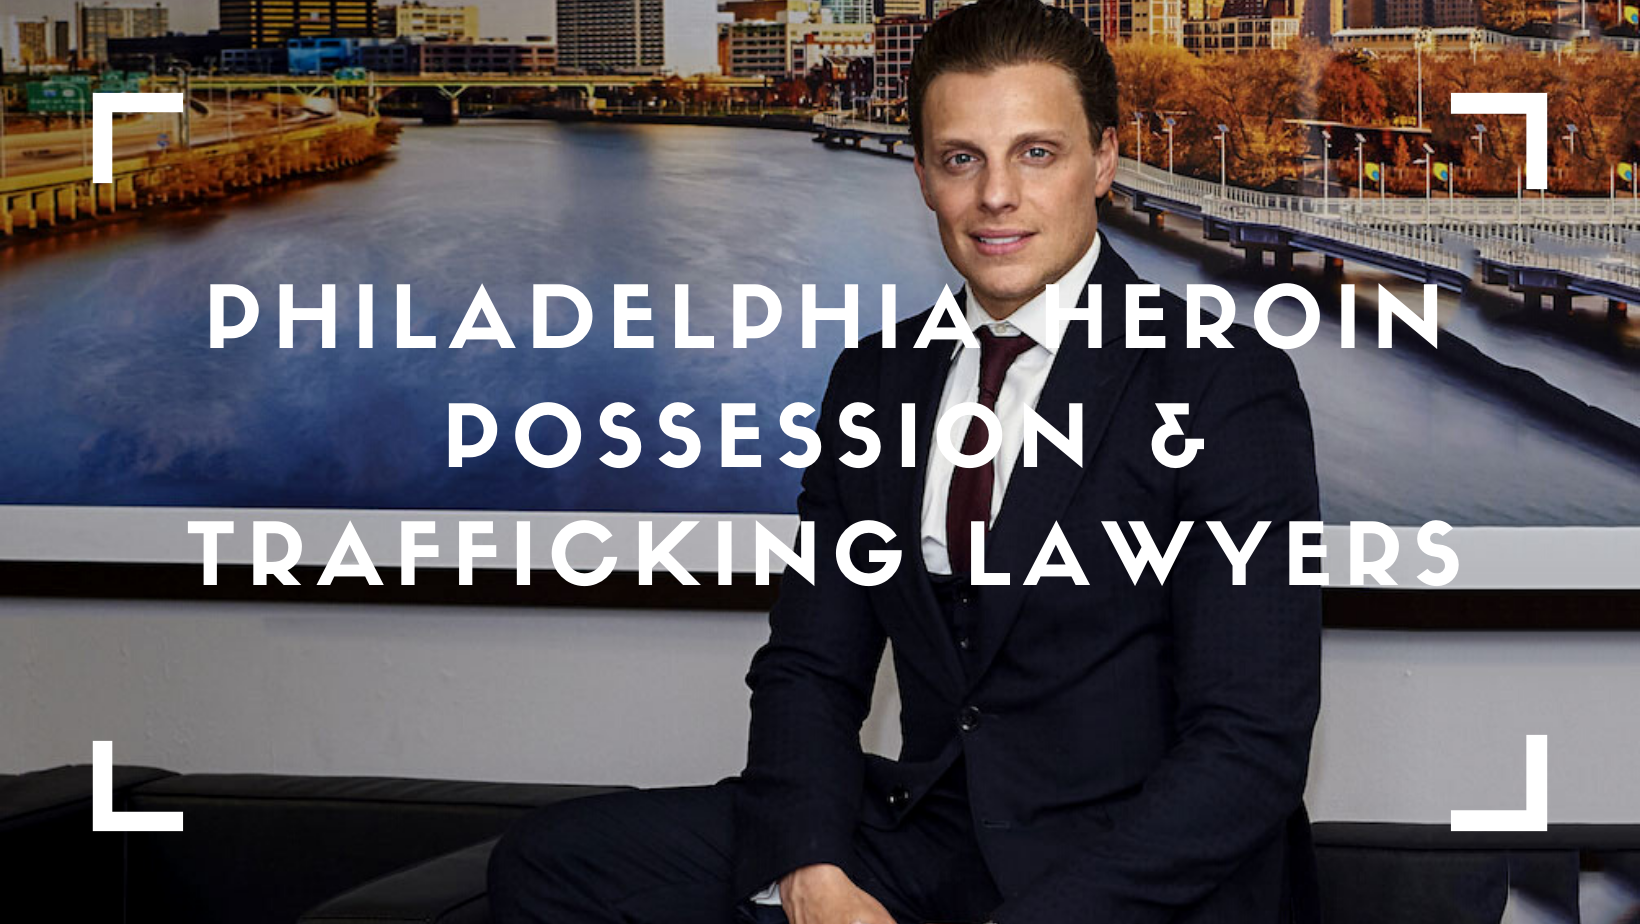 Philadelphia Heroin Possession & Trafficking Lawyers